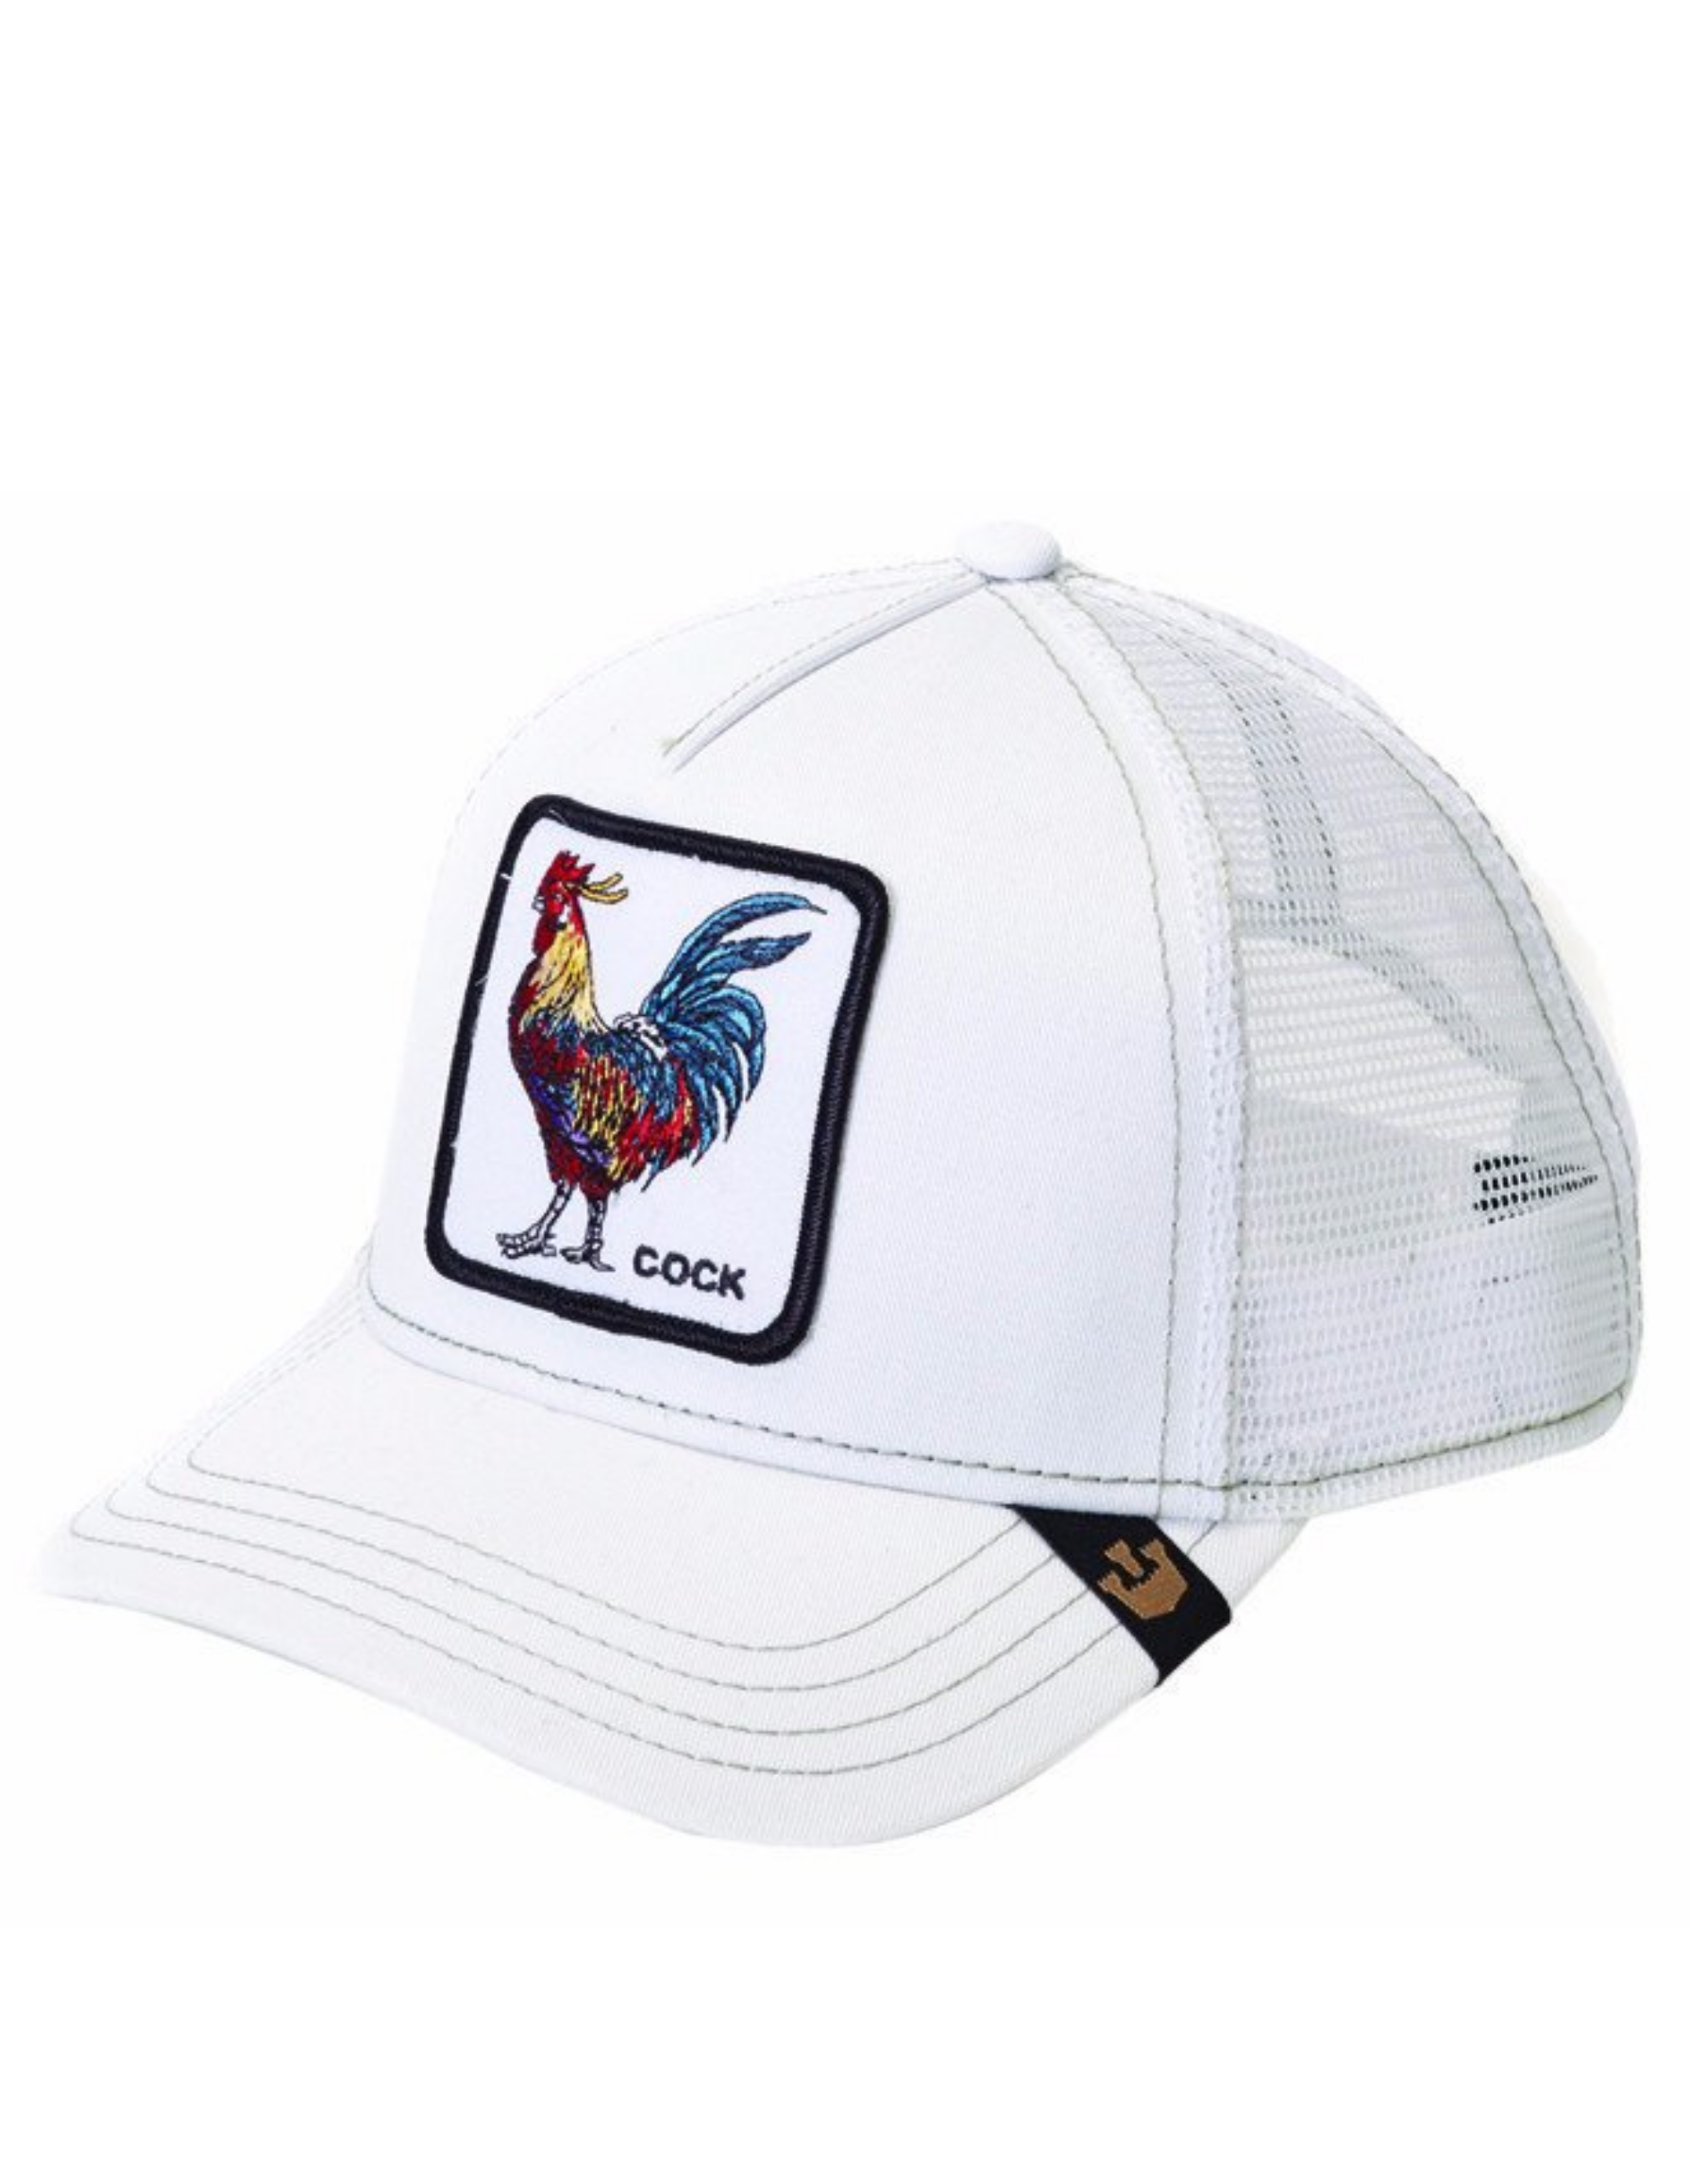 4c95bcc3 Goorin Bros. Gallo Trucker cap - White - €34,95 + LOW shippingcosts